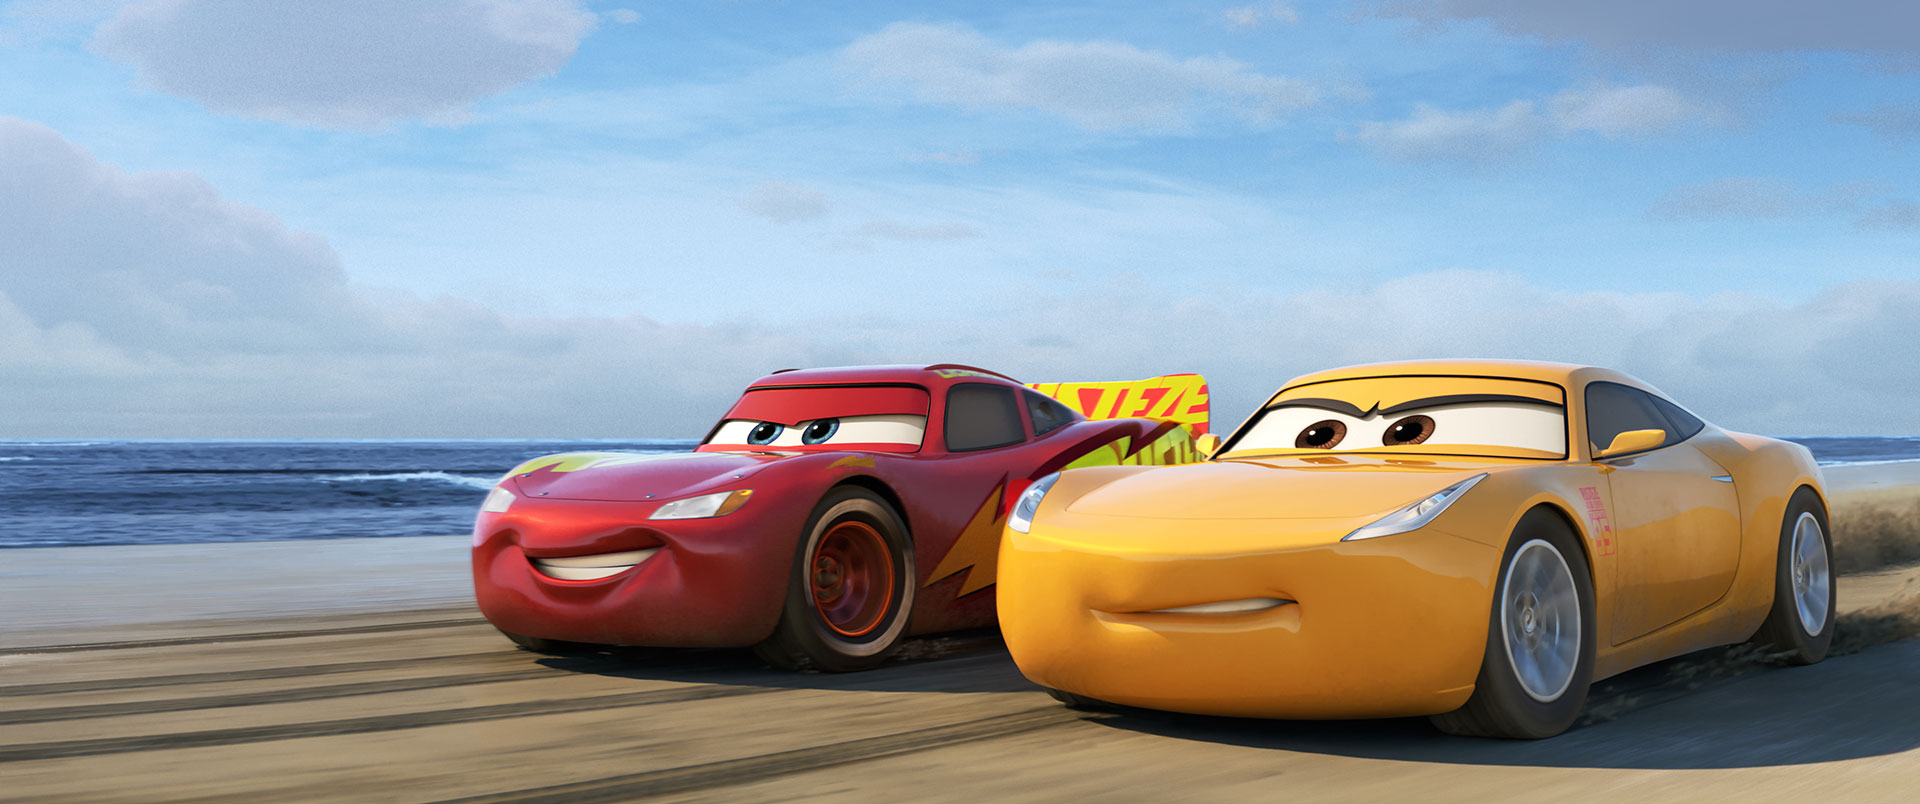 Cars 3 Printable activity sheets – Free to download and print.